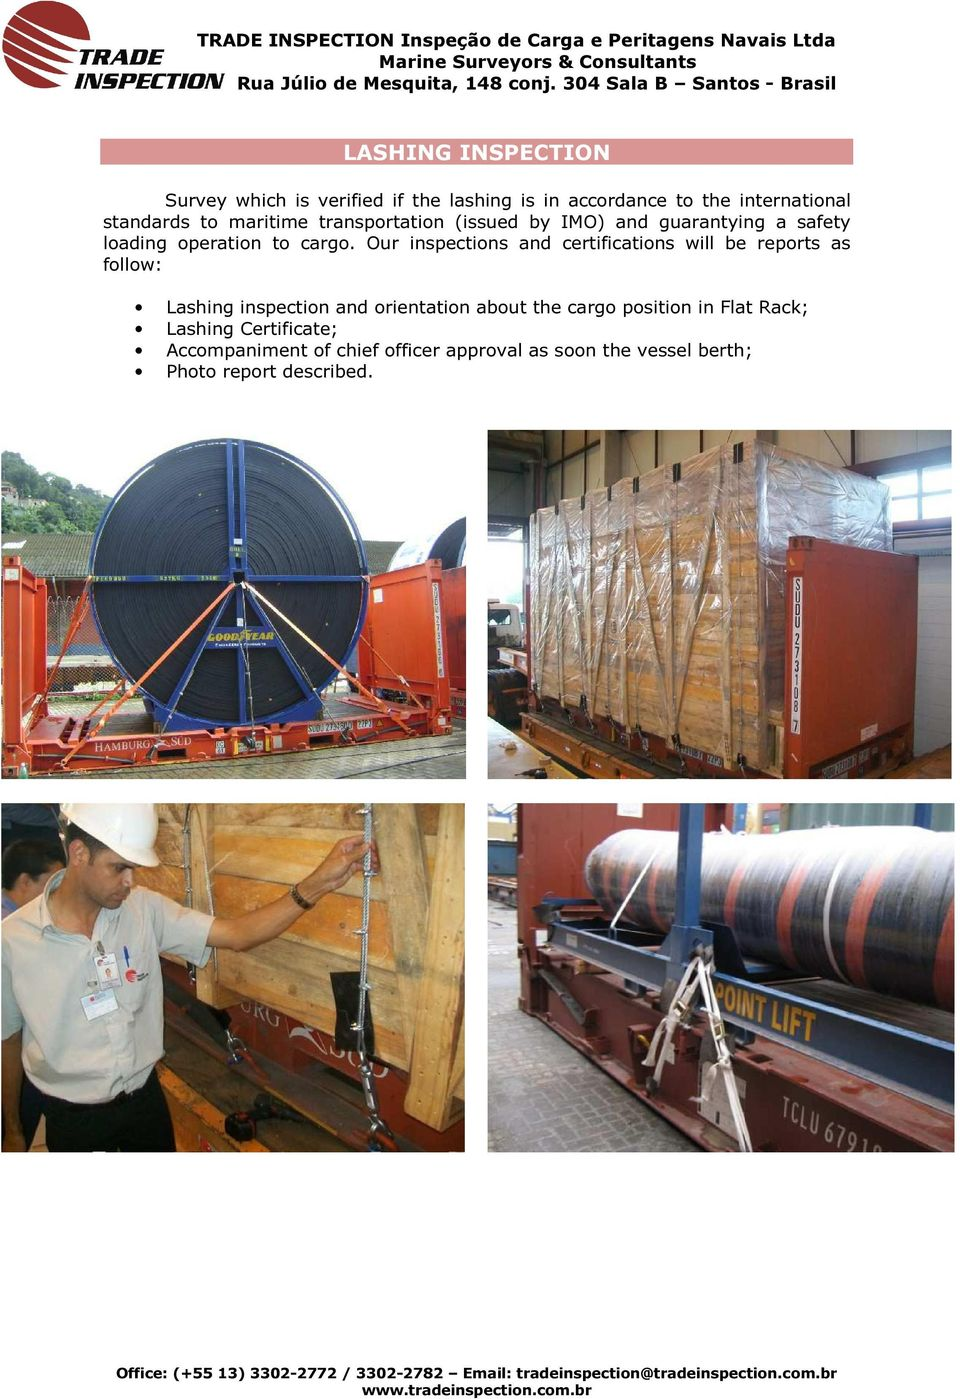 Our inspections and certifications will be reports as follow: Lashing inspection and orientation about the cargo